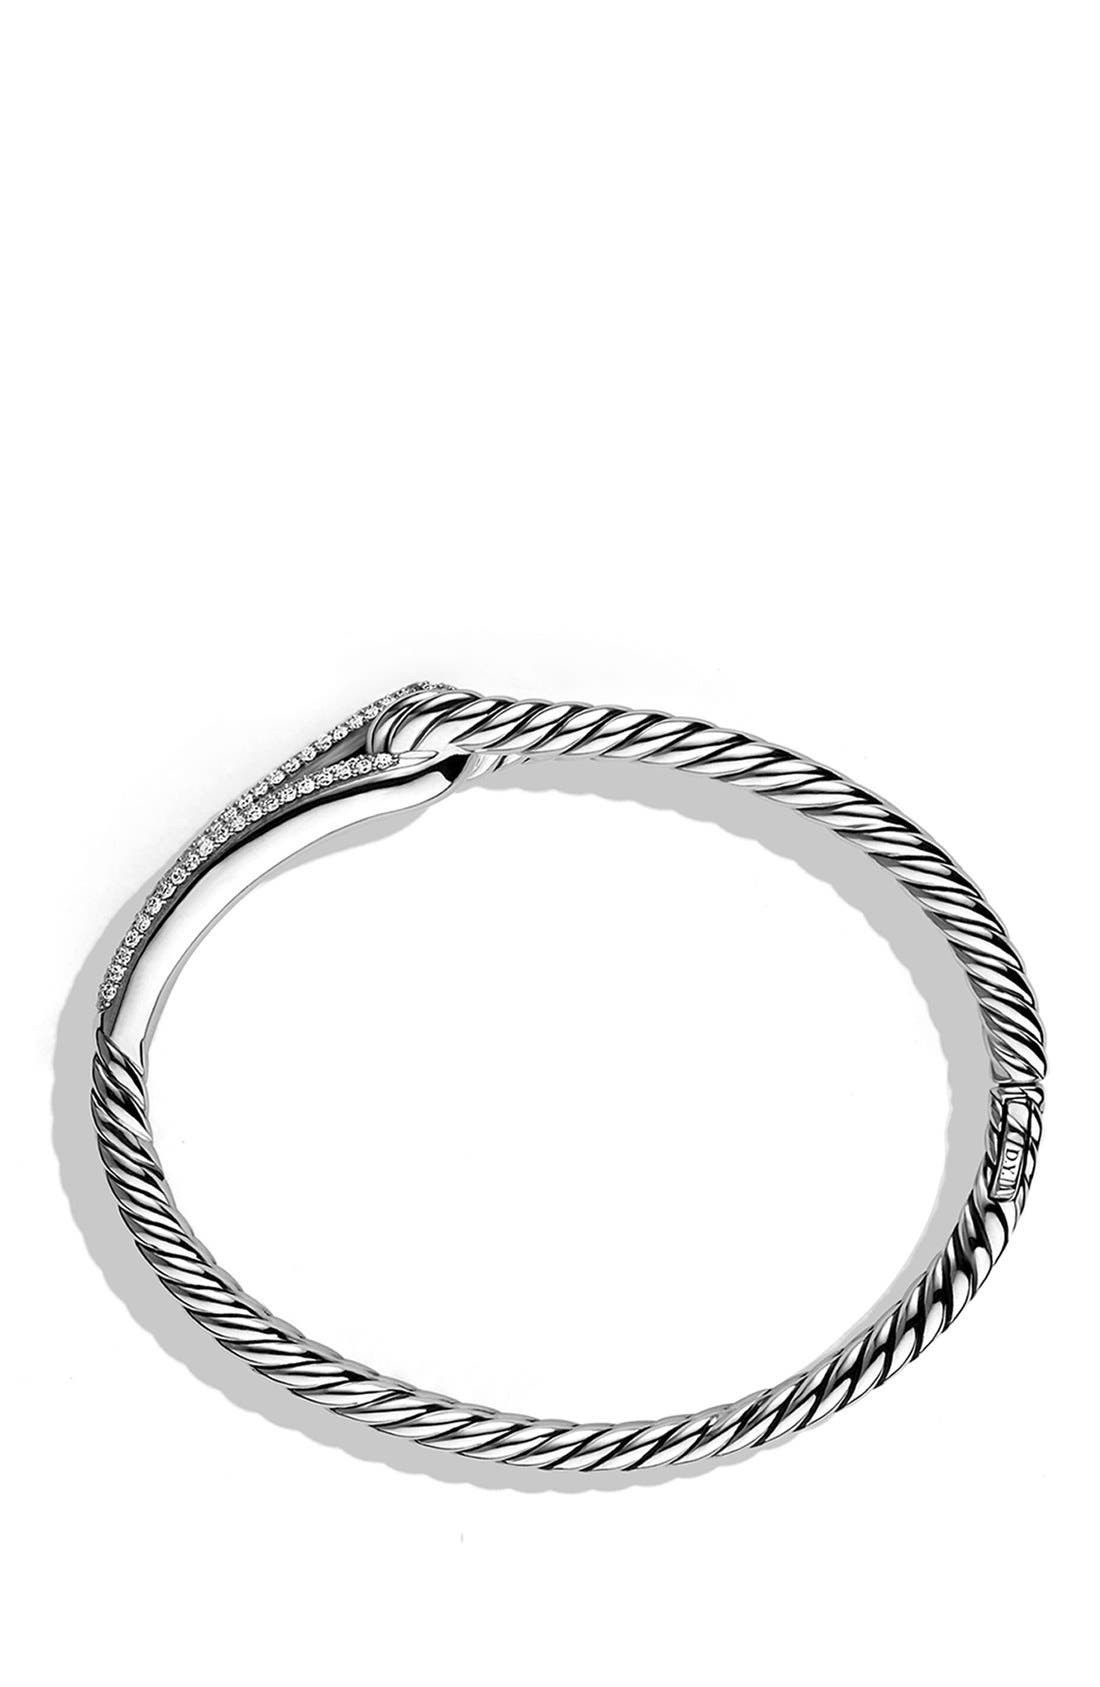 'Labyrinth' Single-Loop Bracelet with Diamonds,                             Alternate thumbnail 2, color,                             Diamond